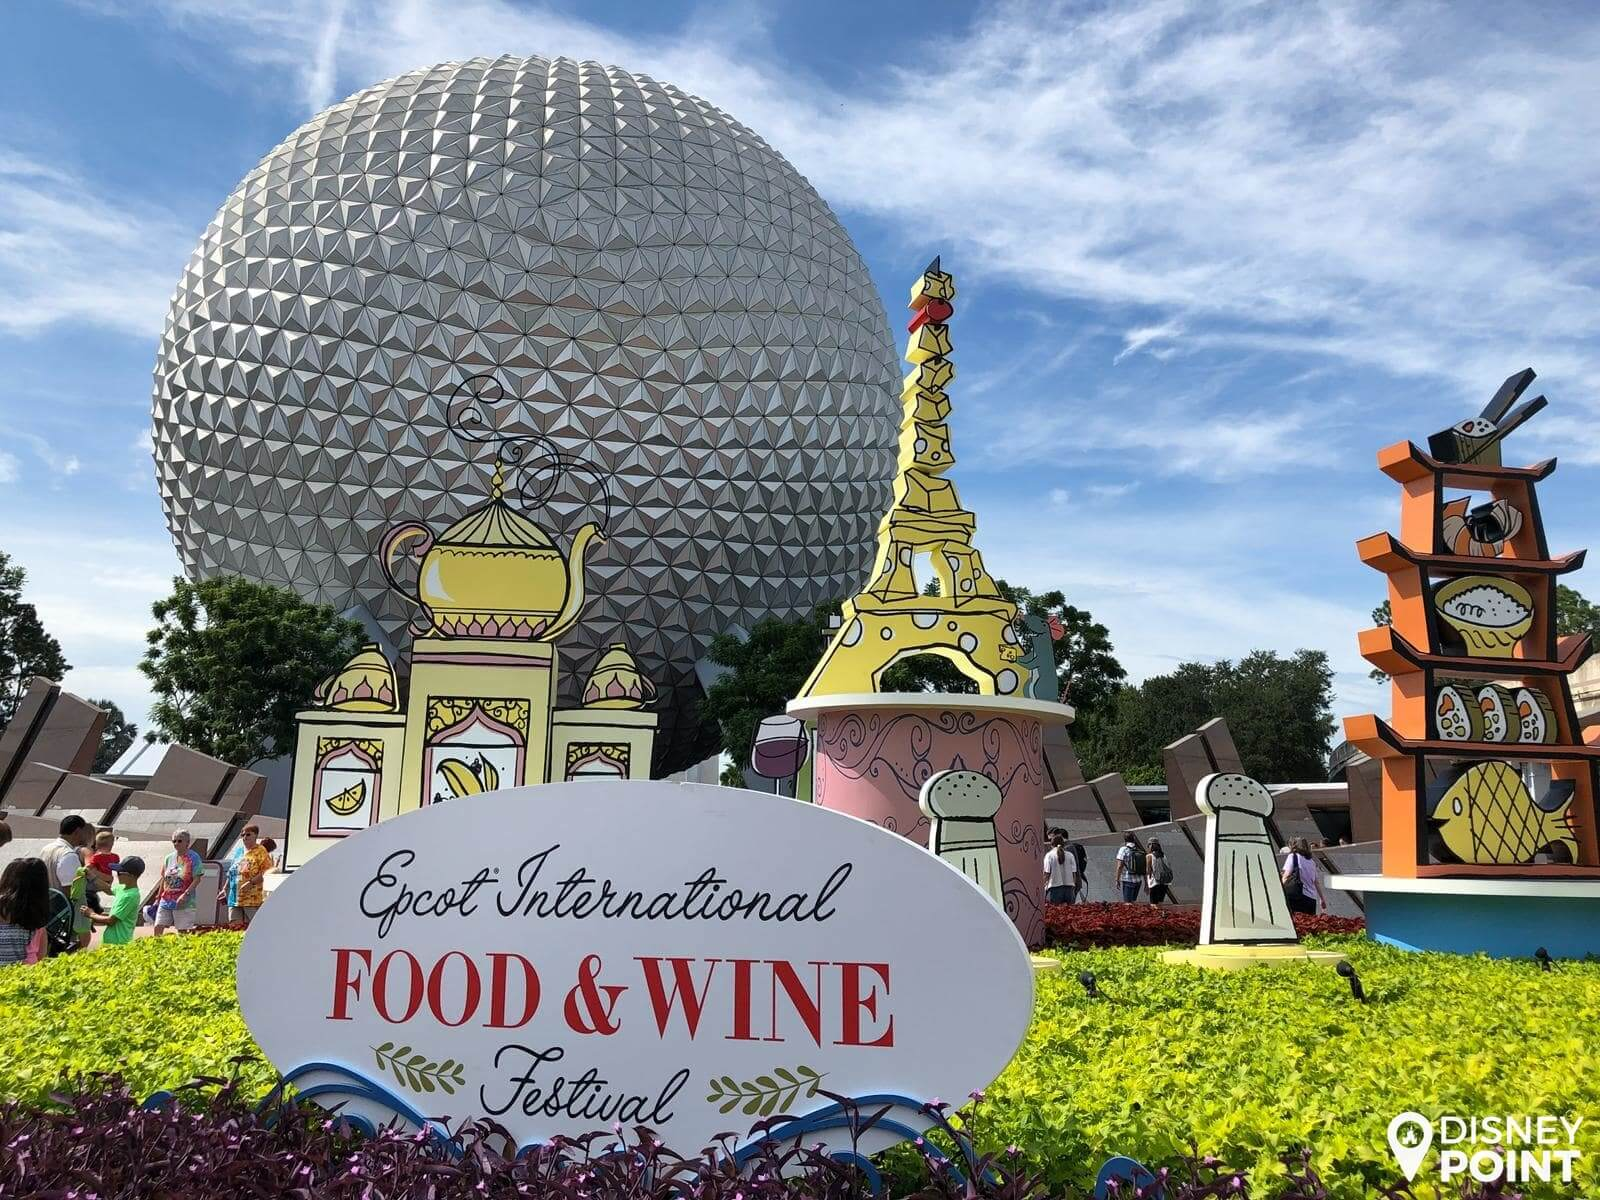 Disney Point Epcot Food & Wine